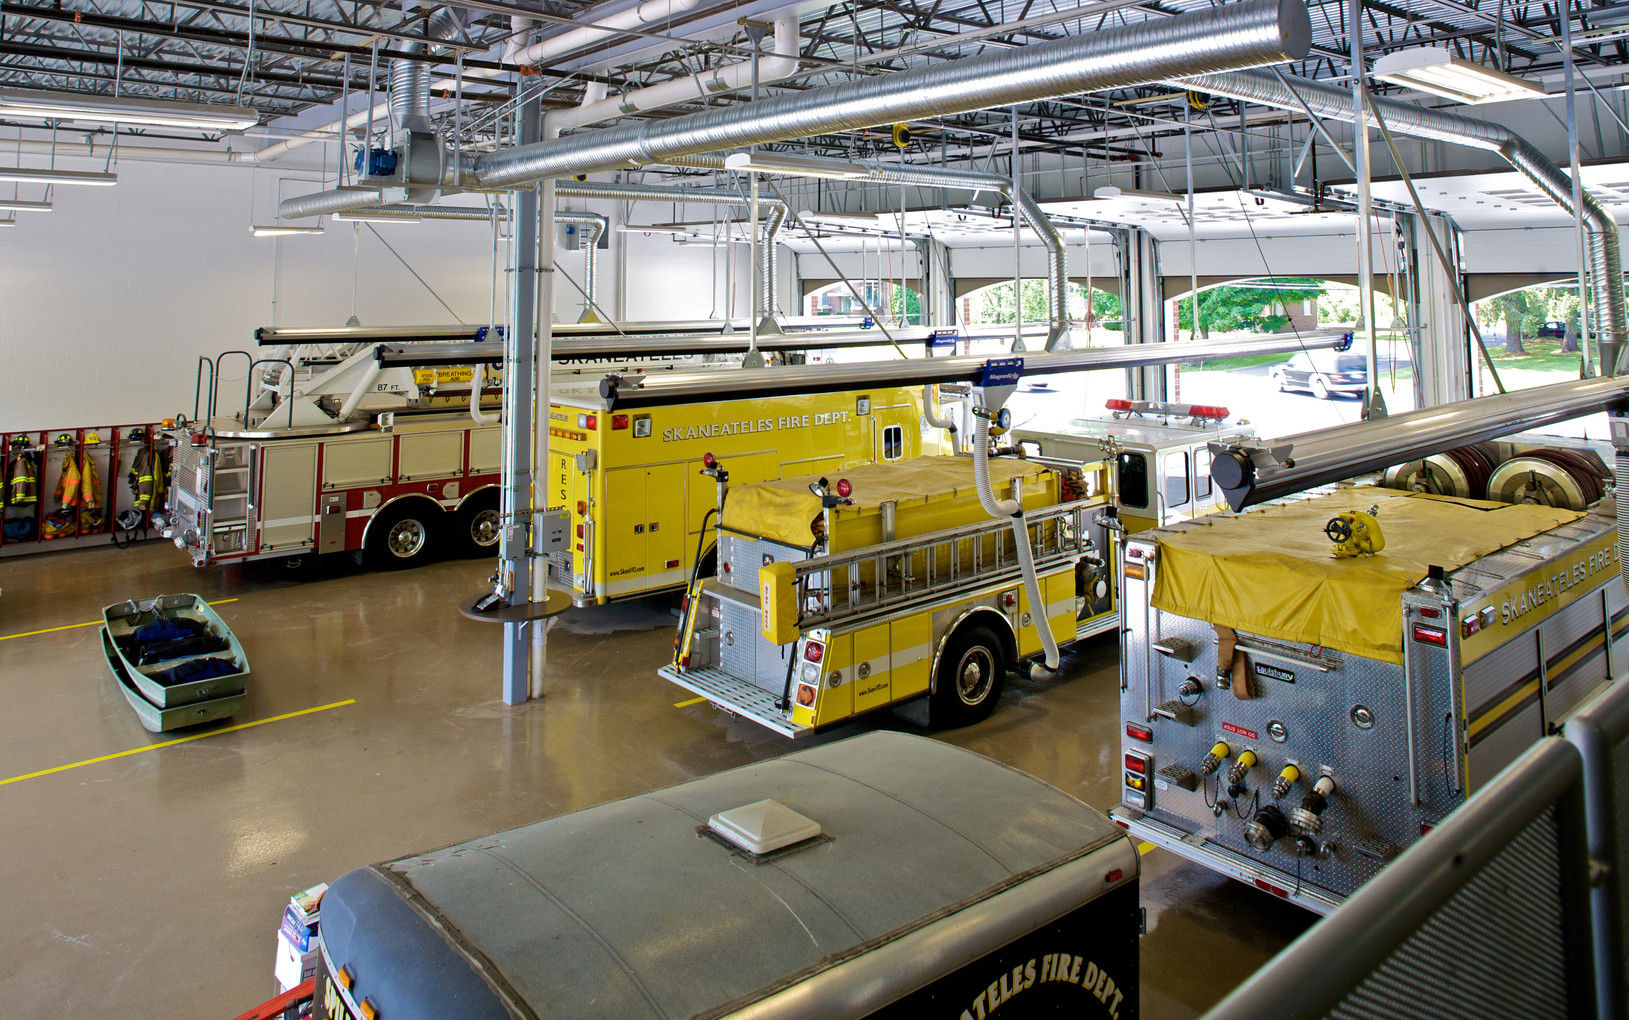 Skaneateles Fire Station - Apparatus Bay